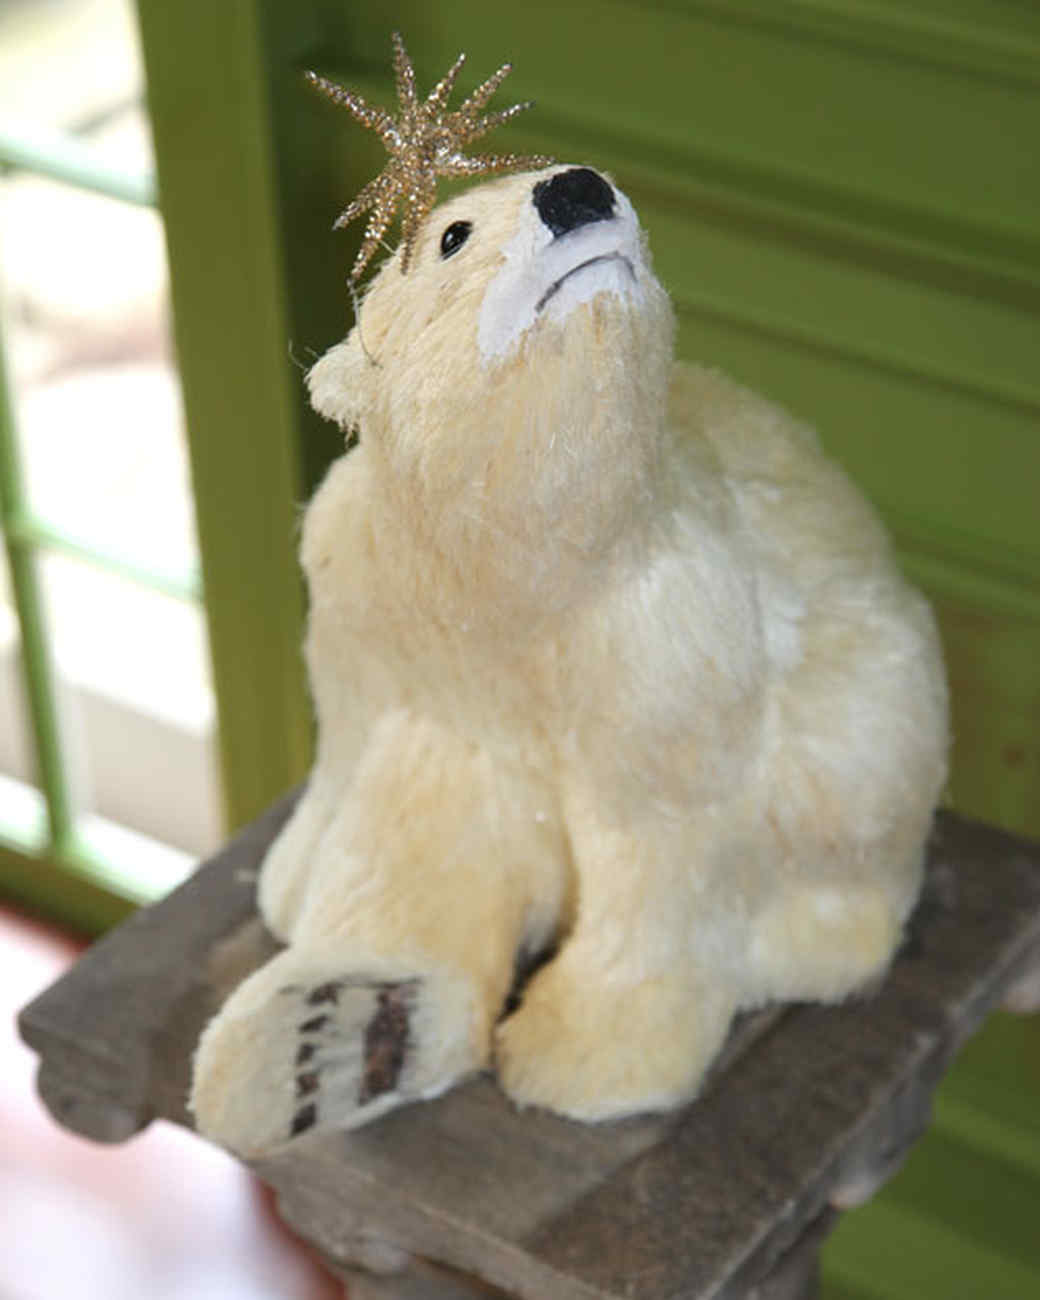 marthas holiday decorating ideas martha stewart - Outdoor Polar Bear Christmas Decorations